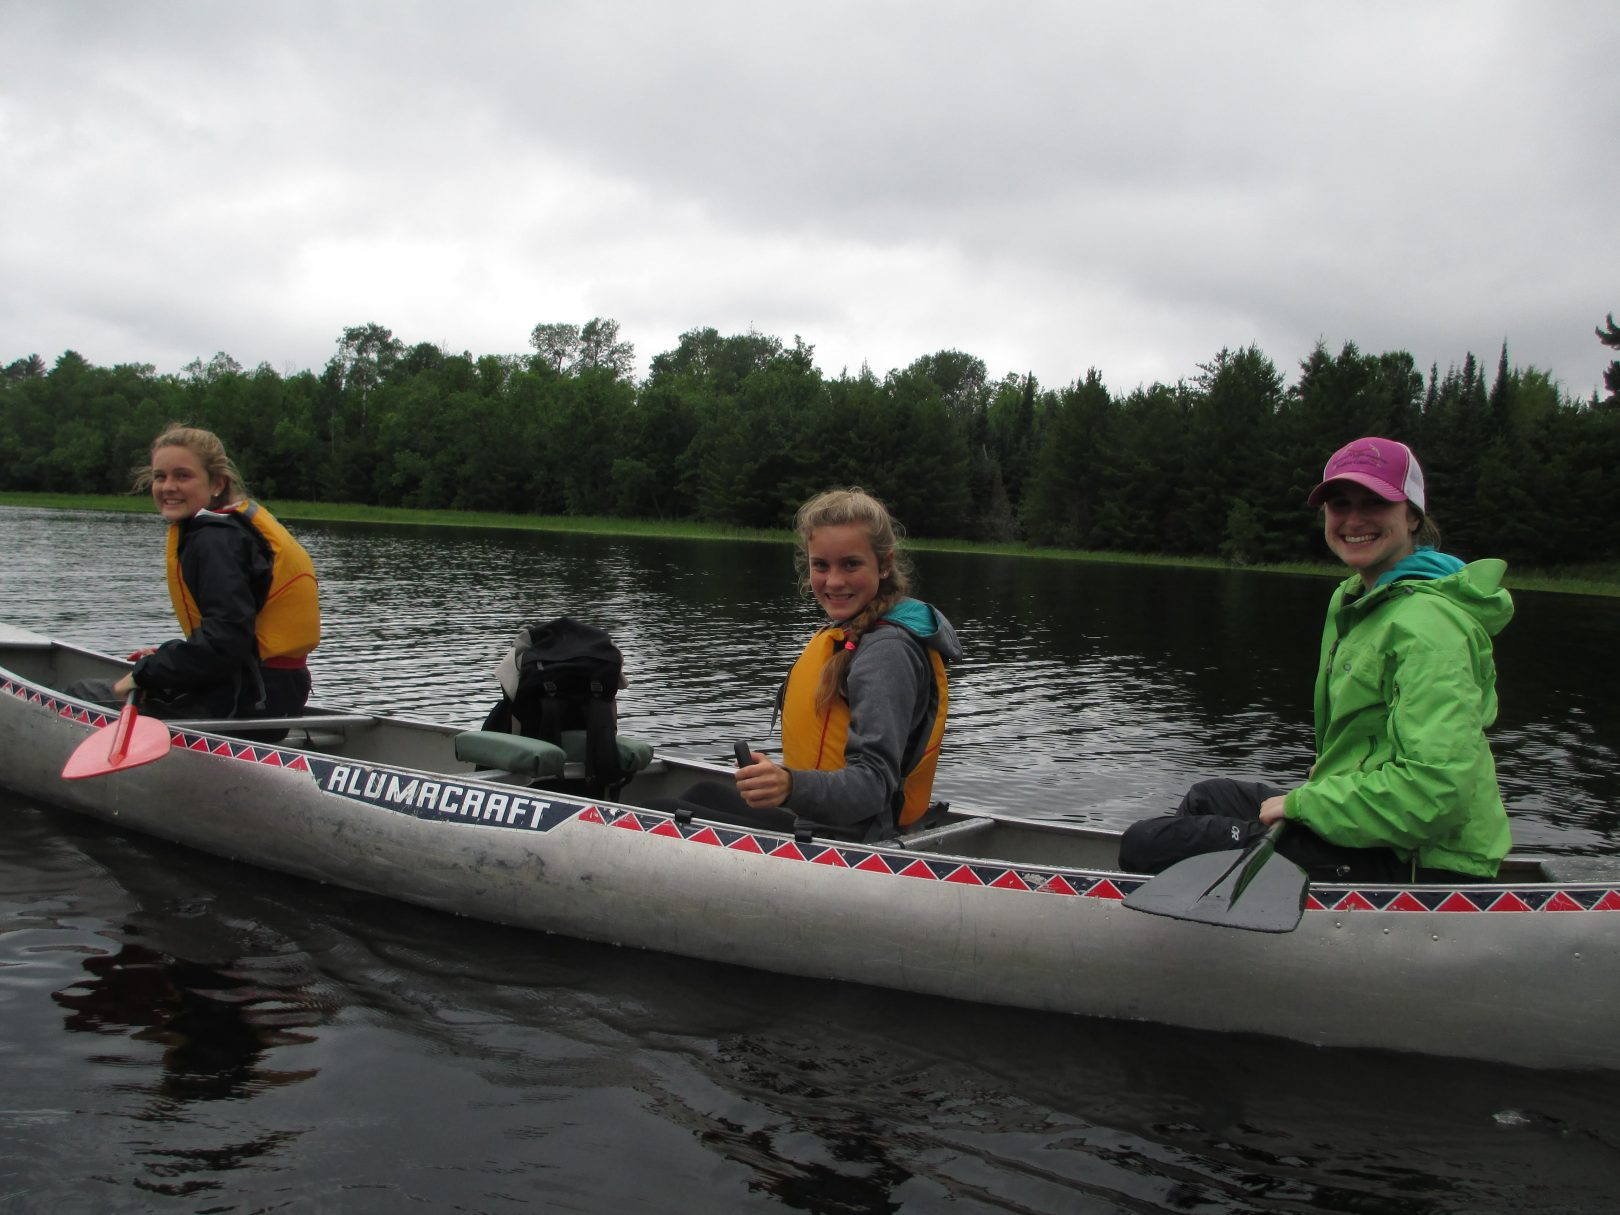 3 young recruits canoeing on a wide open lake